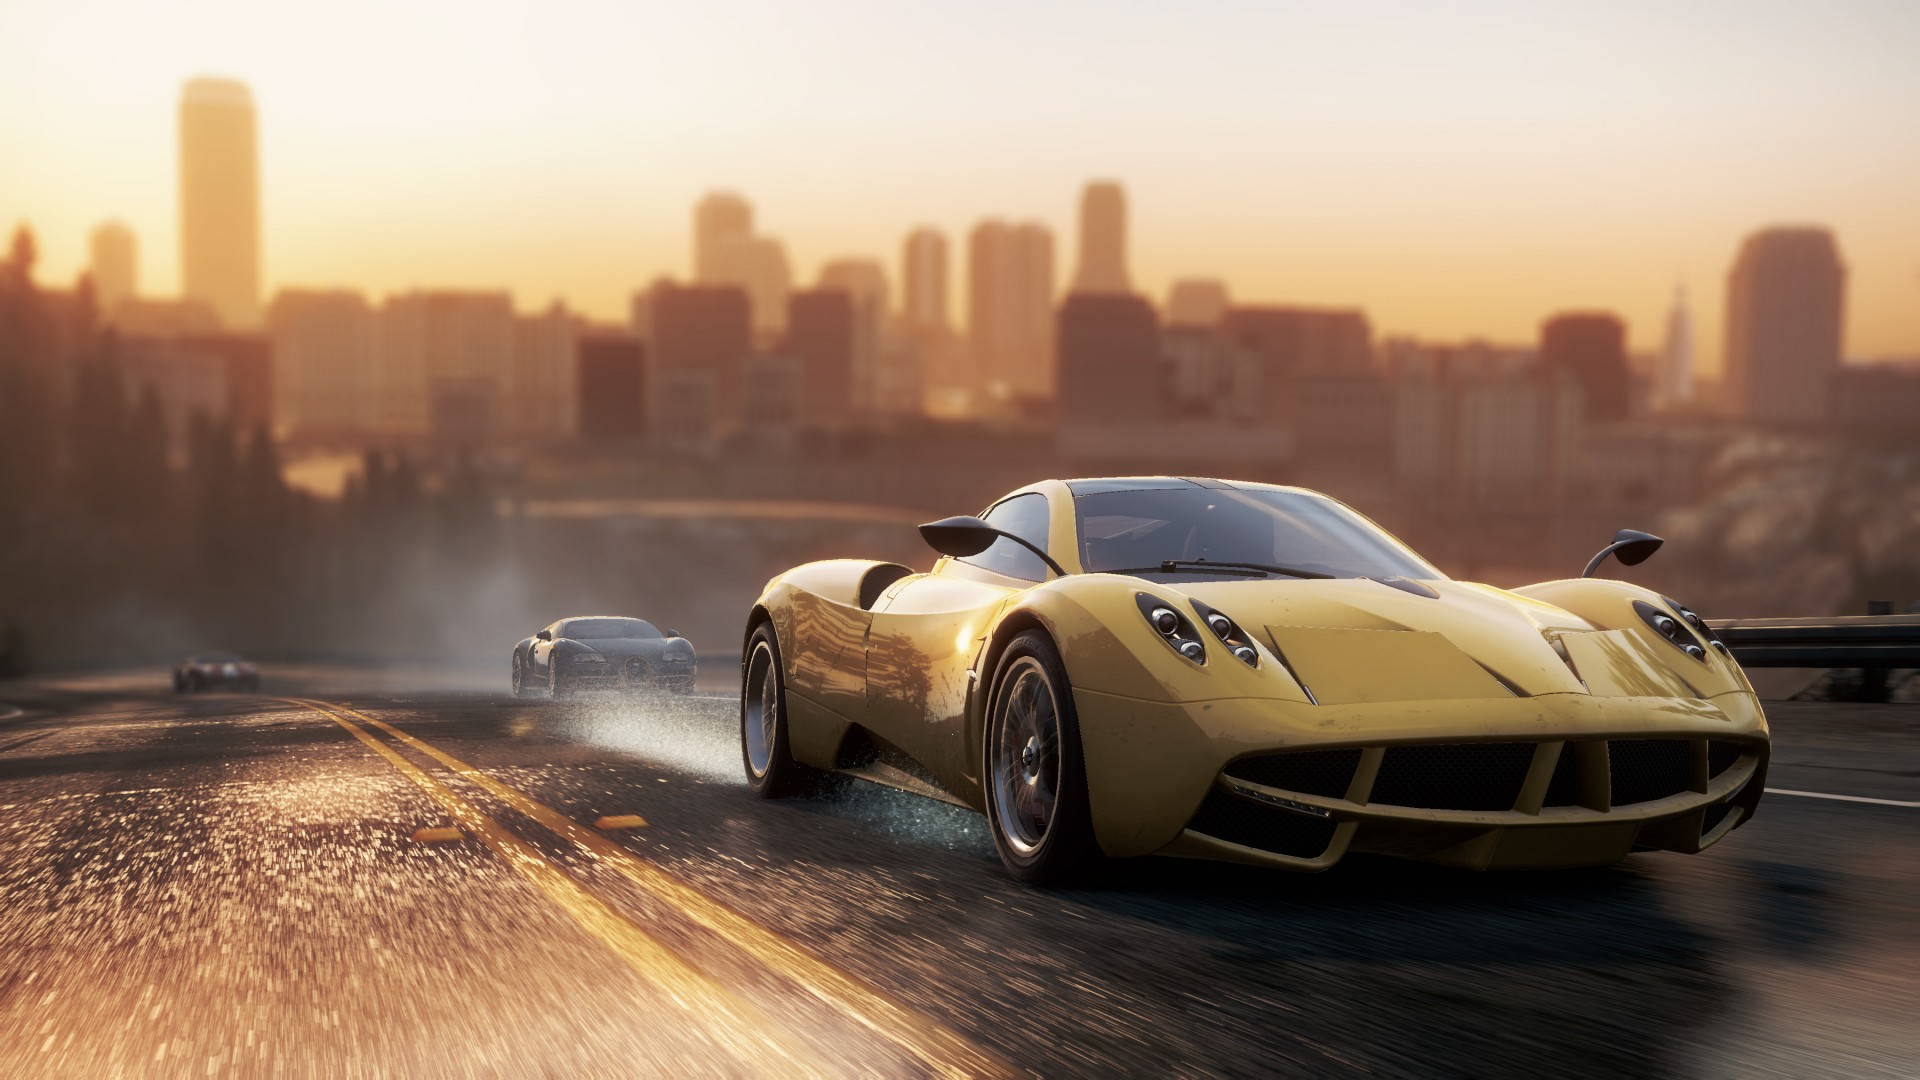 Download Pagani Huayra Speed Most Wanted Cars 1080p High Definition 1920x1080